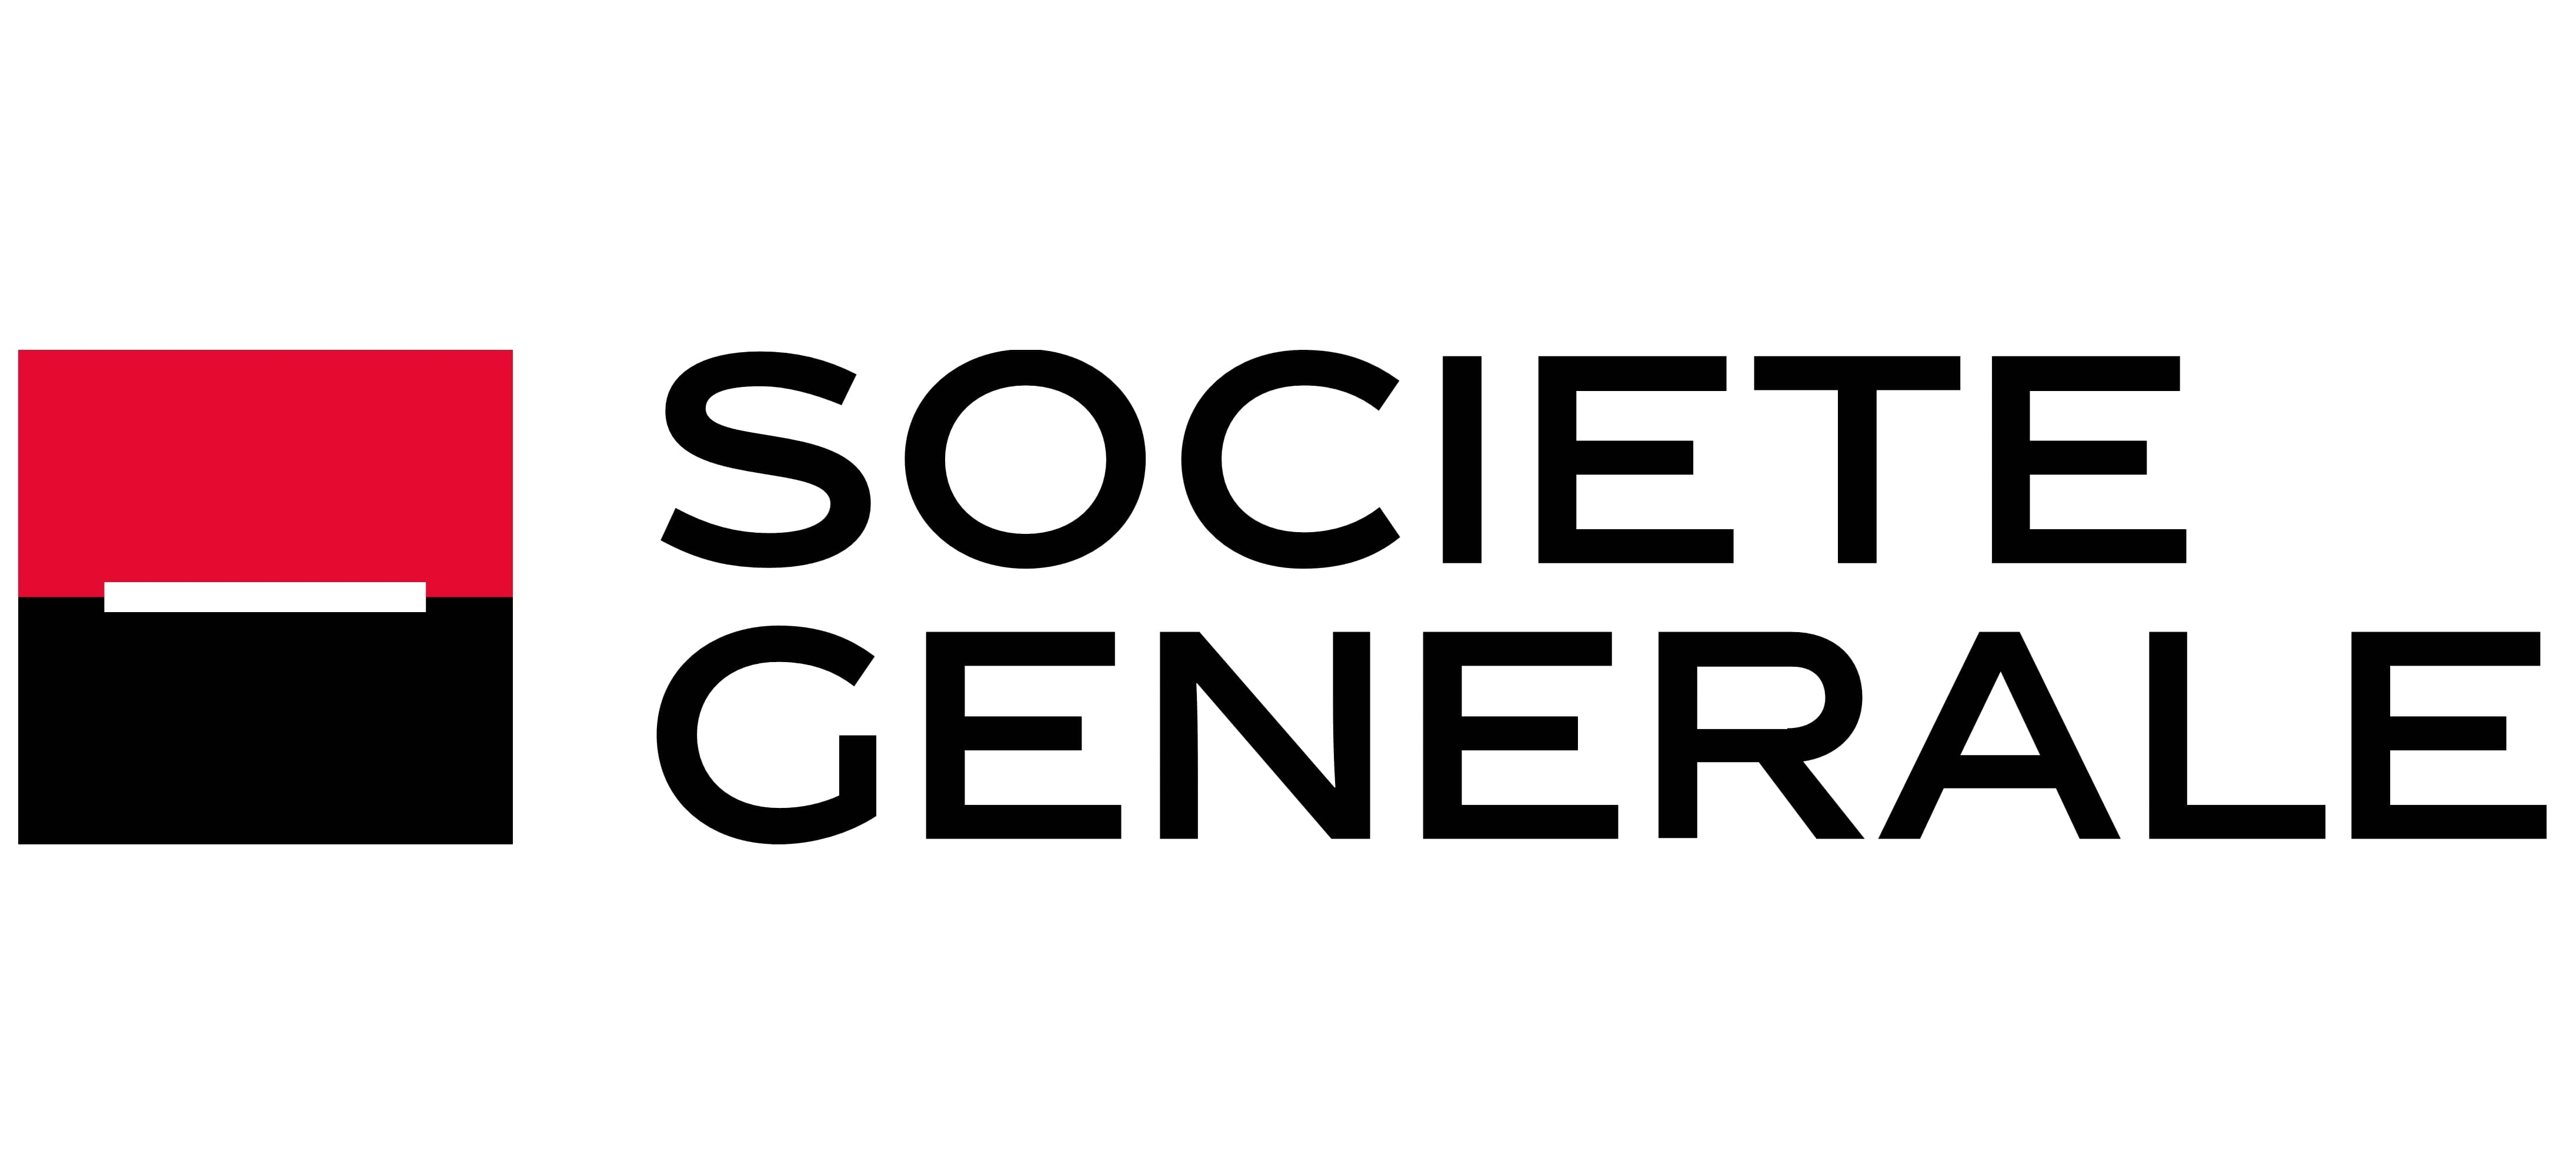 Societe Generale logo and symbol, meaning, history, PNG